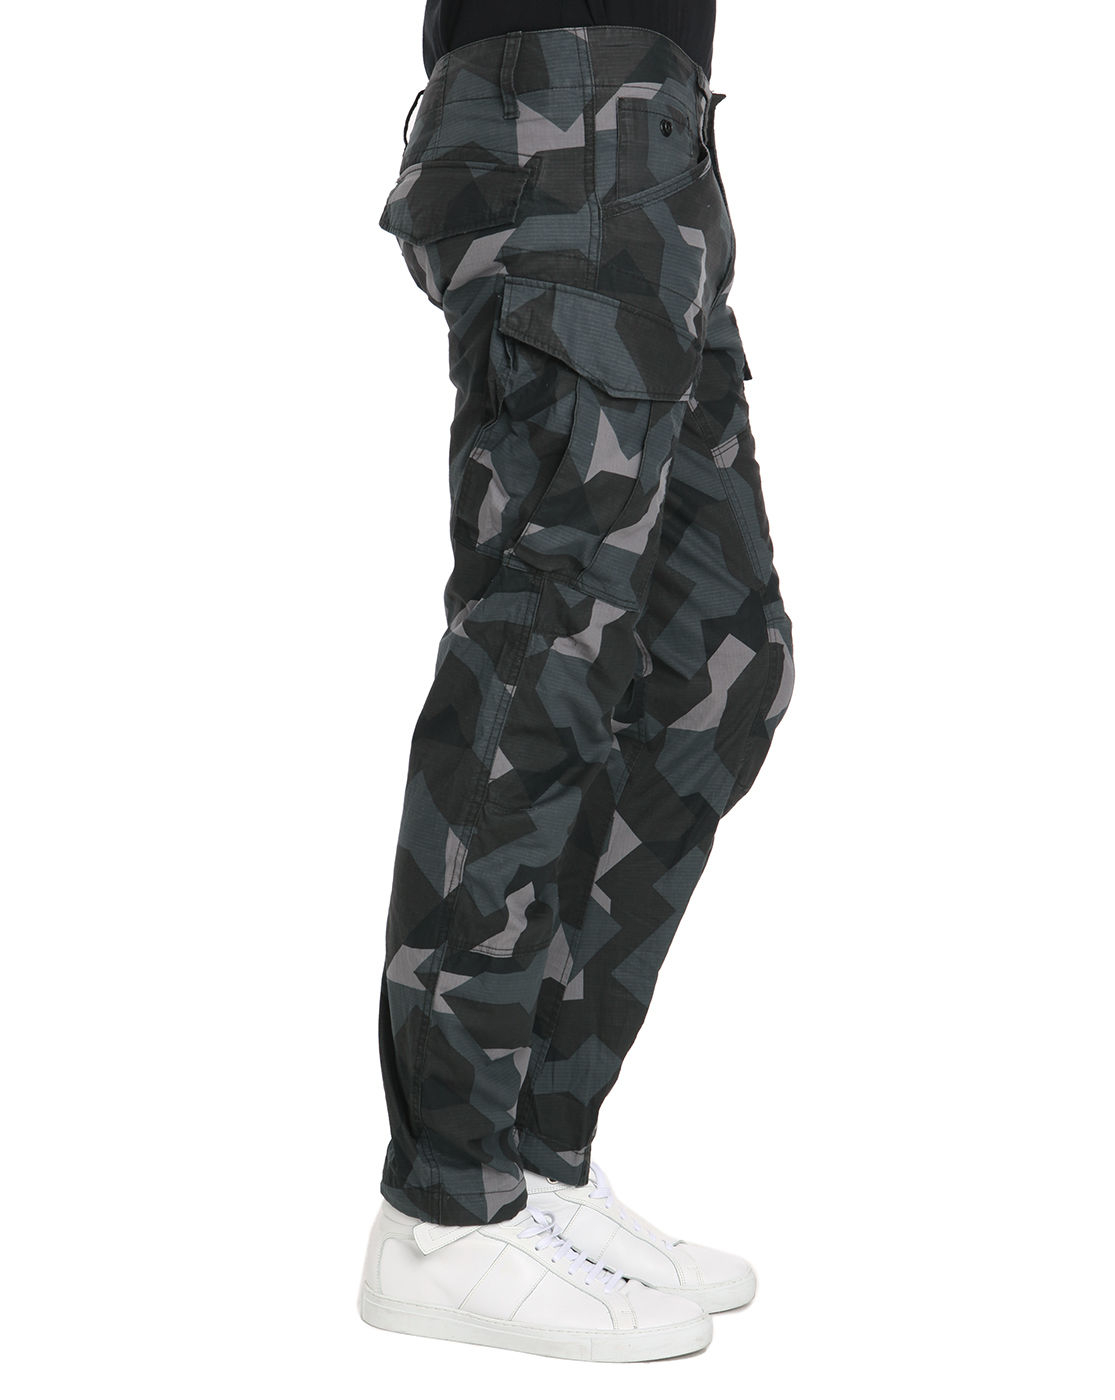 g star raw rovic zip 3d tapered camo cargo trousers in green for men camo lyst. Black Bedroom Furniture Sets. Home Design Ideas